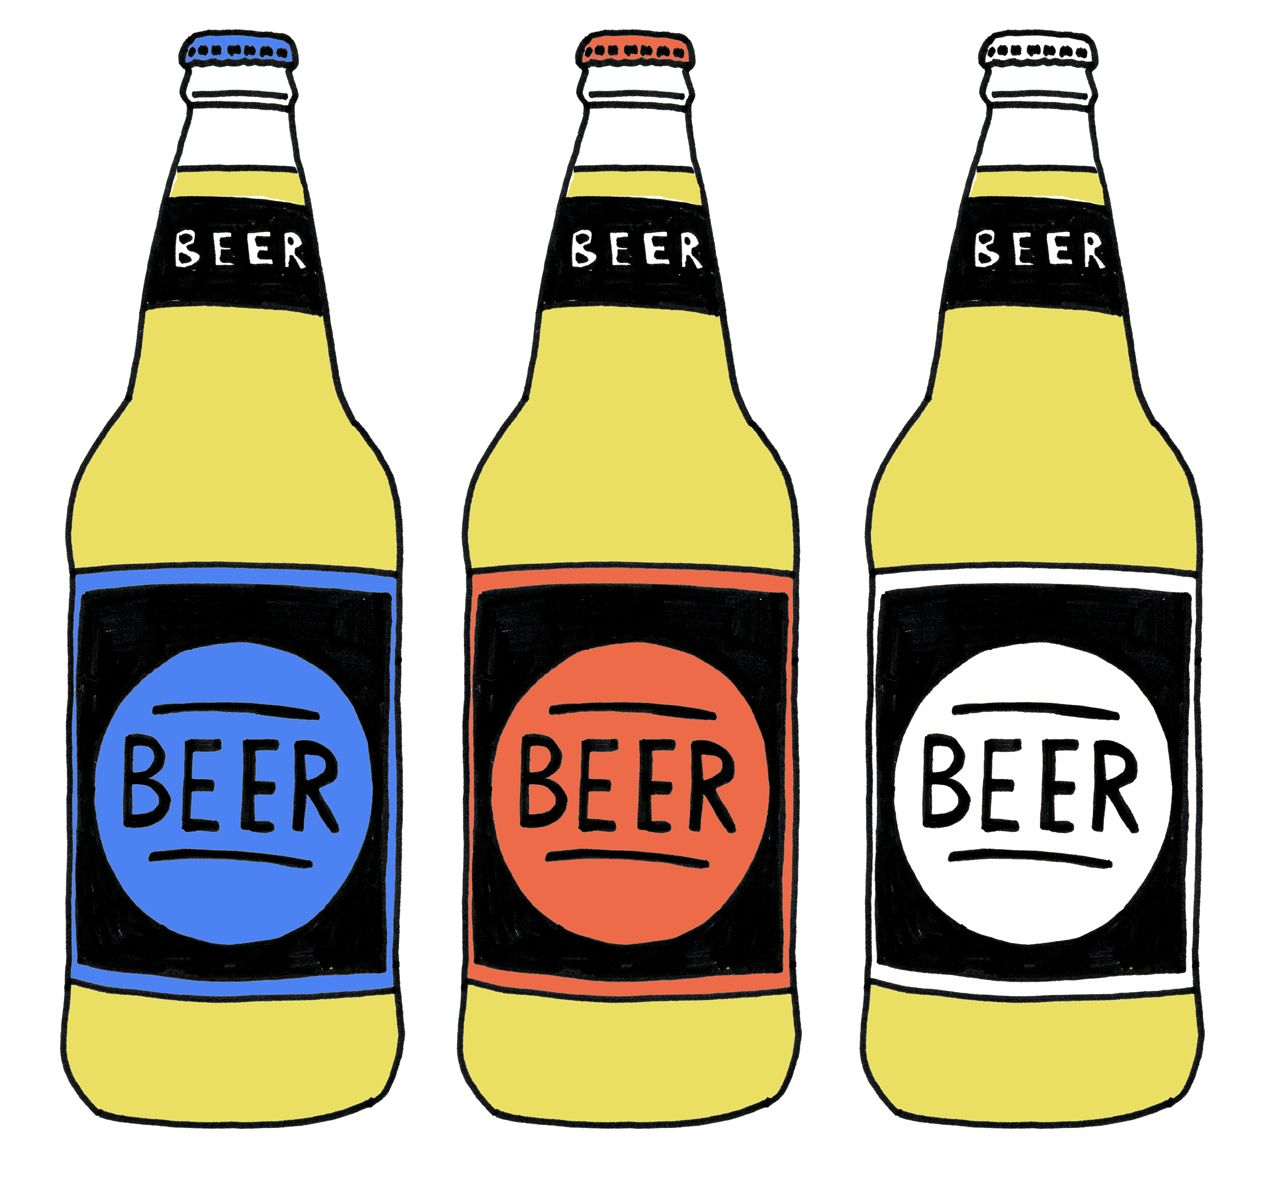 beer bottle clipart clipart kid design pinterest rh pinterest ph beer bottle clip art free beer bottle clip art free